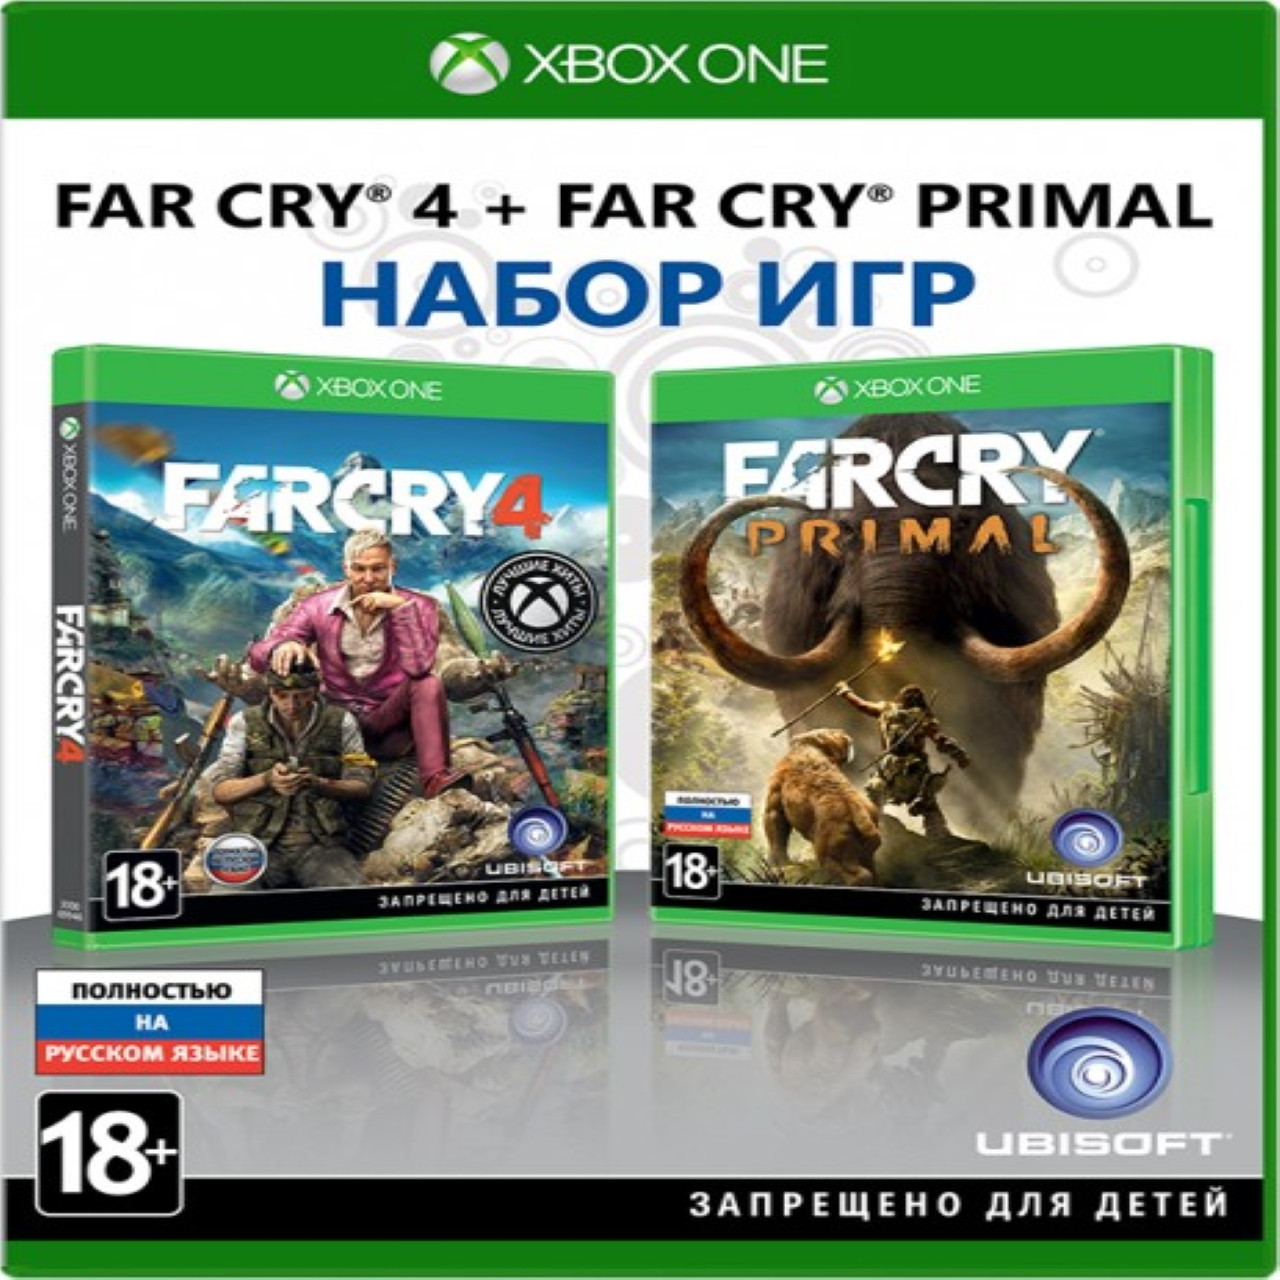 Far Cry 4 + Far Cry Primal Xbox One RUS (NEW)